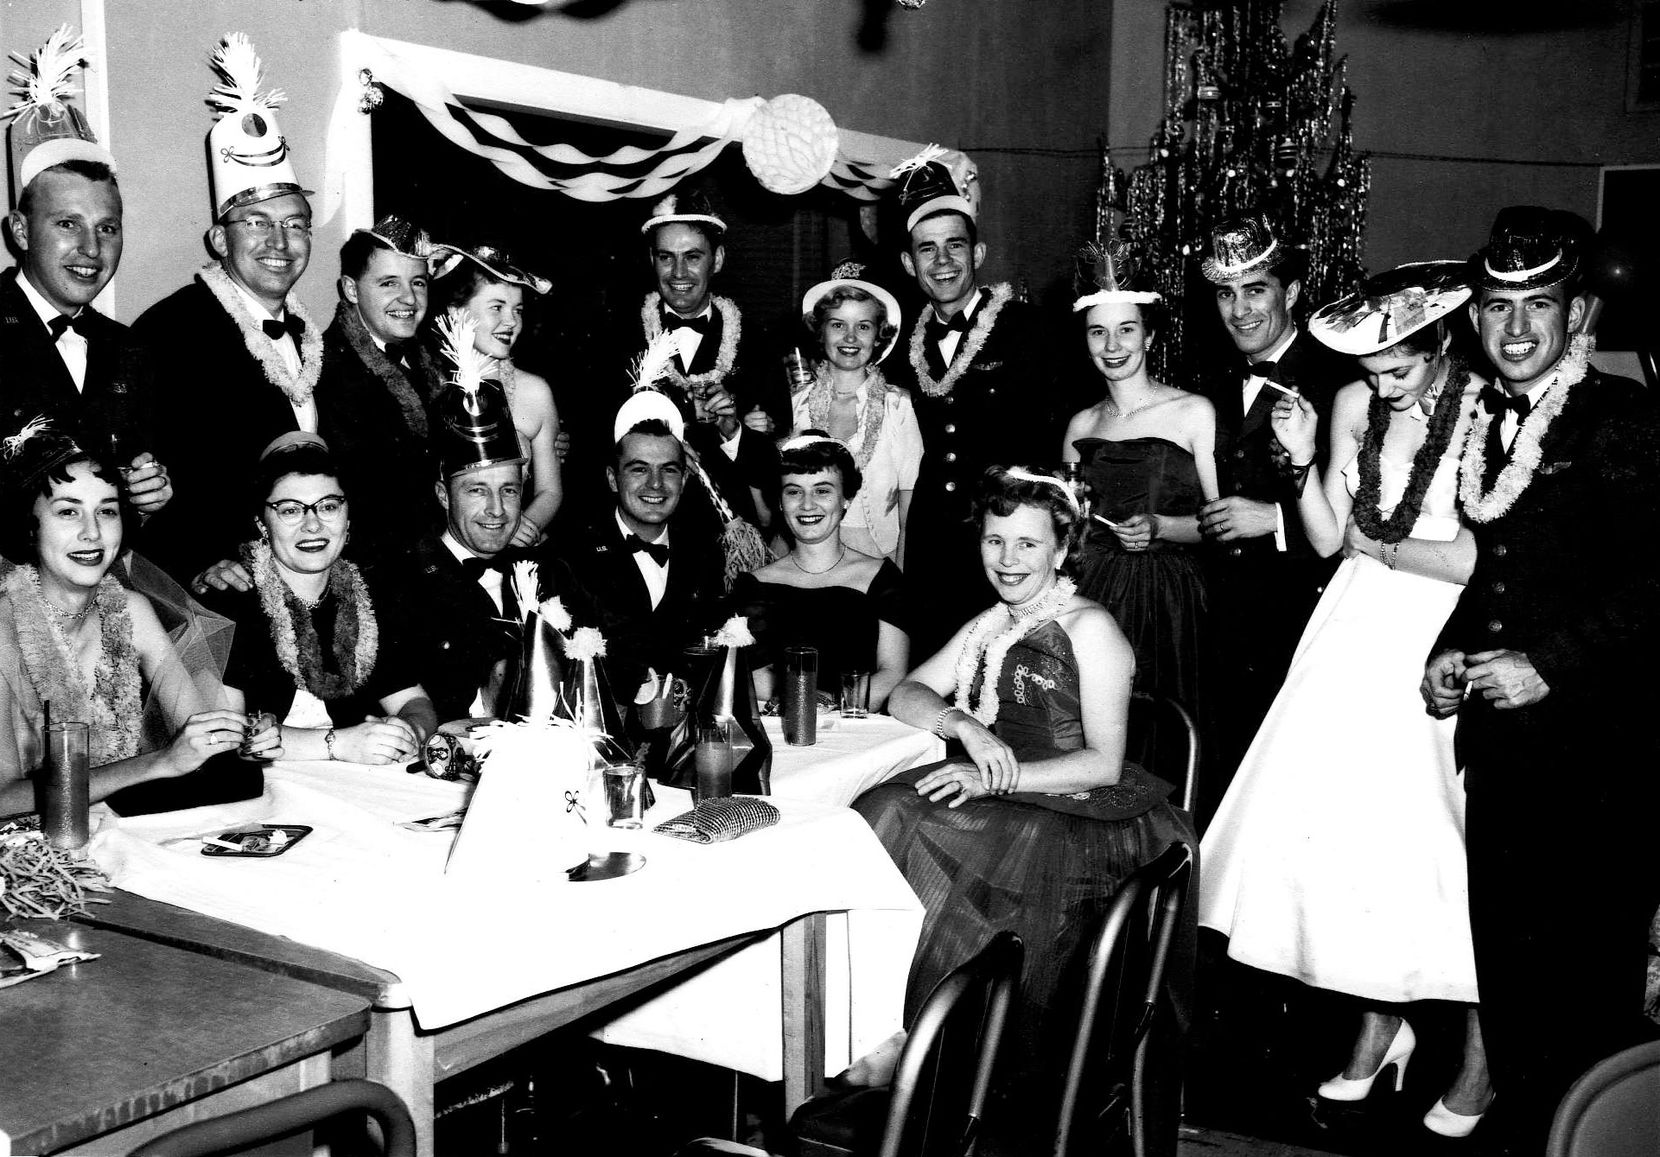 Larry and Jo Whitford (both far left) with other officers and their wives at a party in an undated photo. The Whitfords loved to throw parties and invite other families on the bases where Larry was stationed.